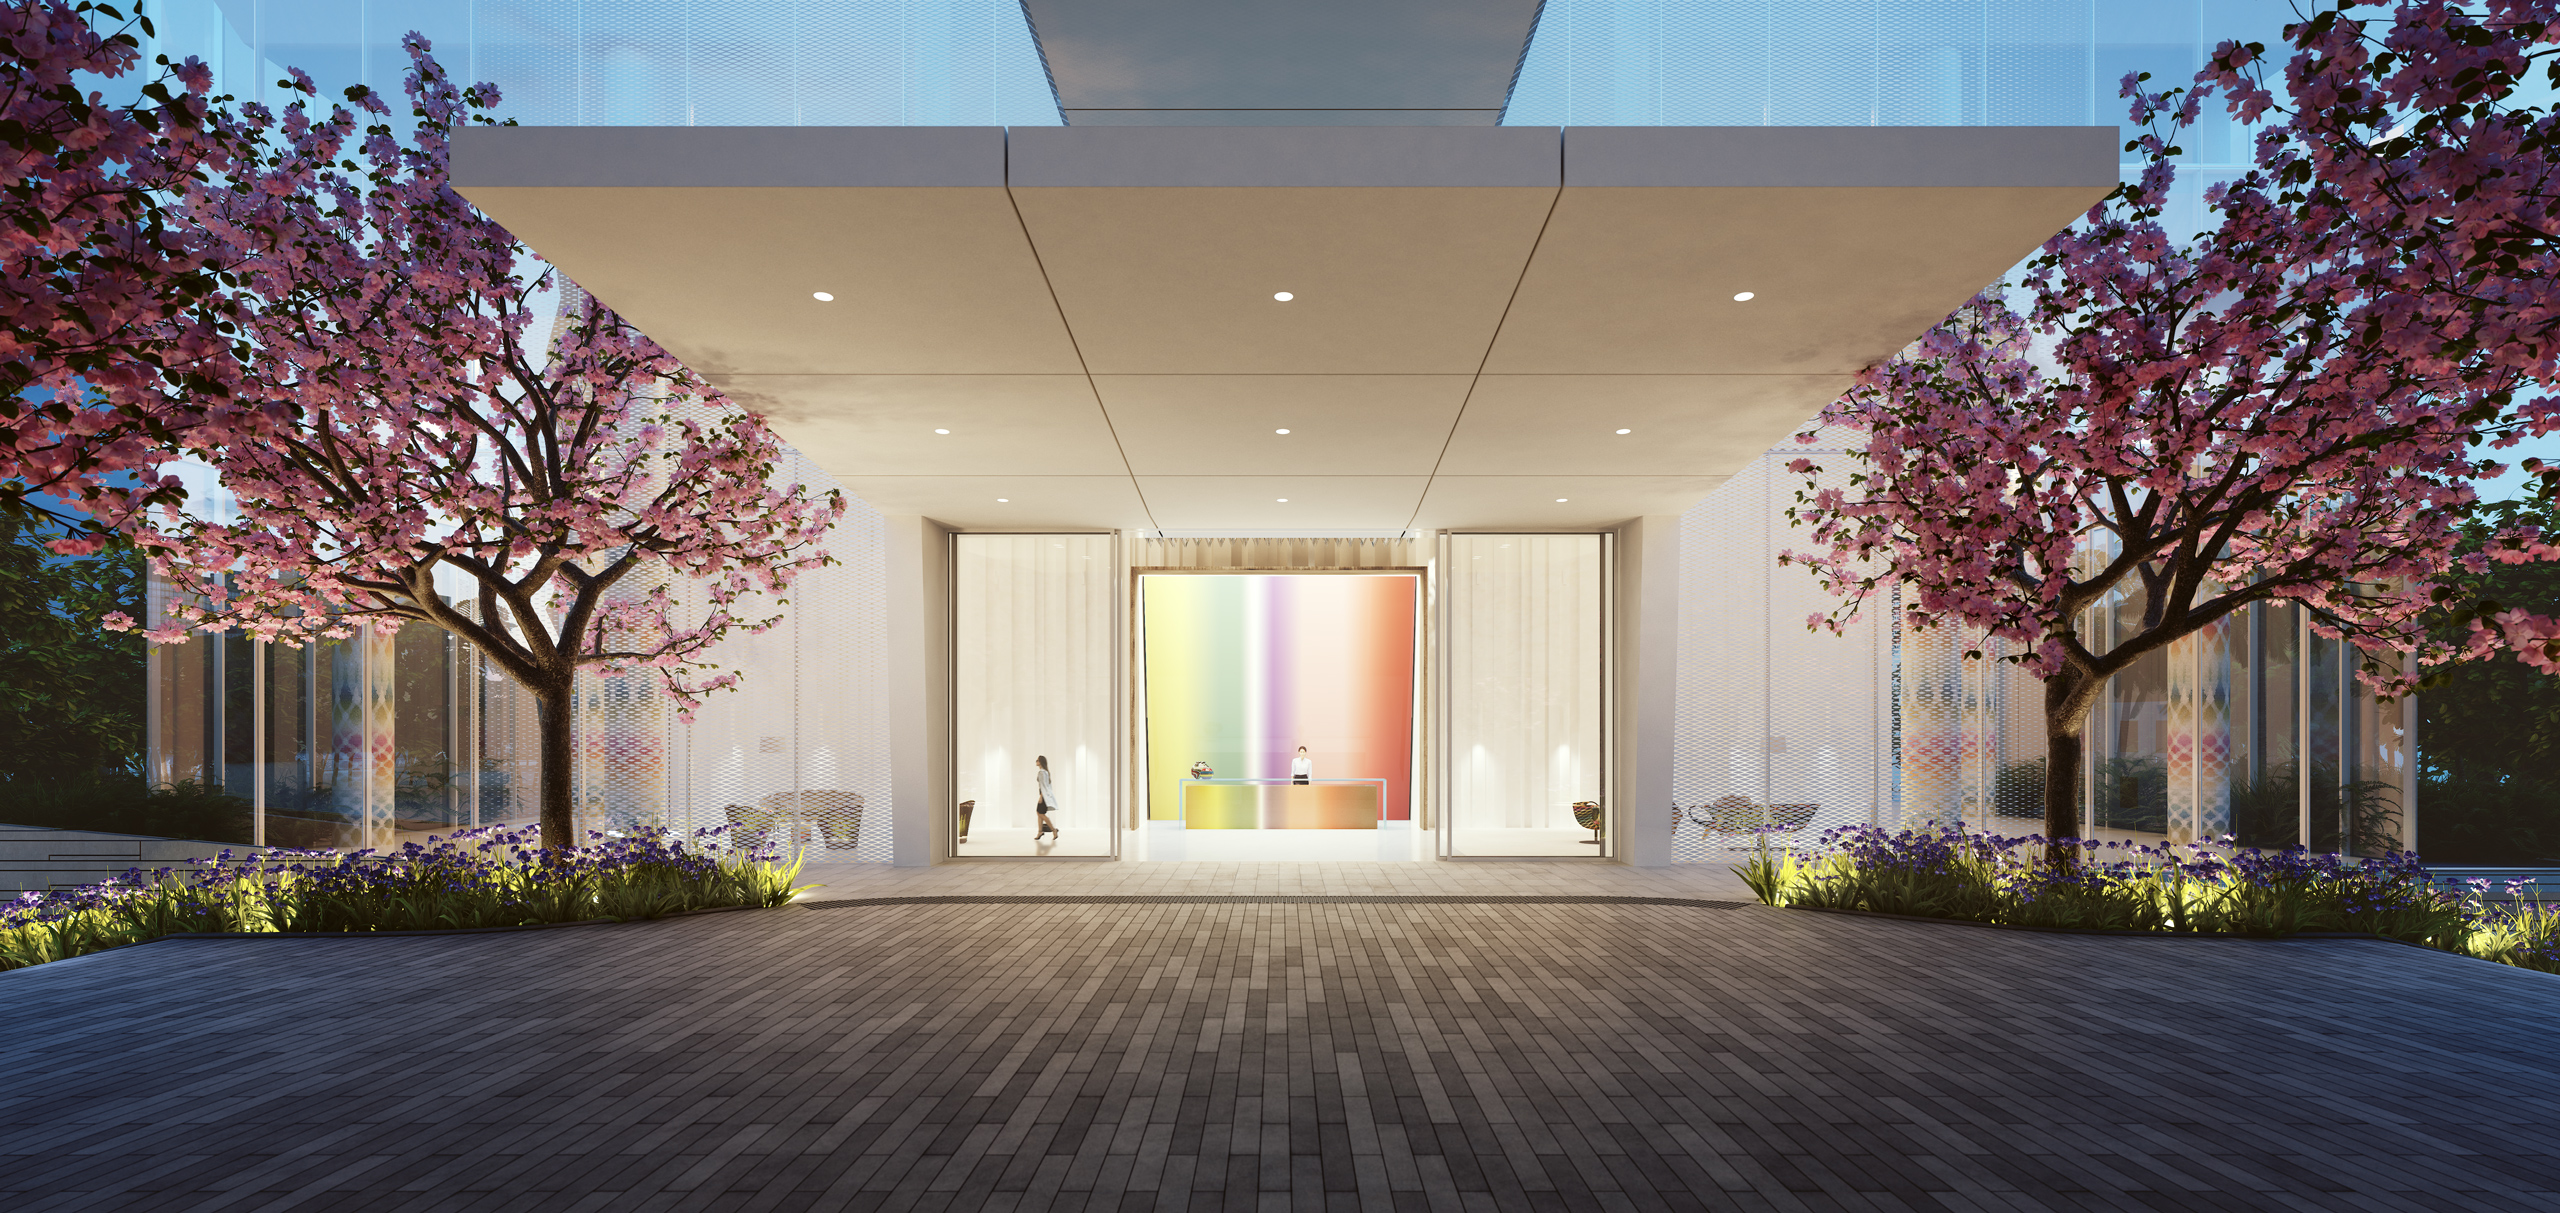 Exterior view of entrance to Missoni Baia condominiums with red trees lining the walkway. Includes Miami oceanfront view.